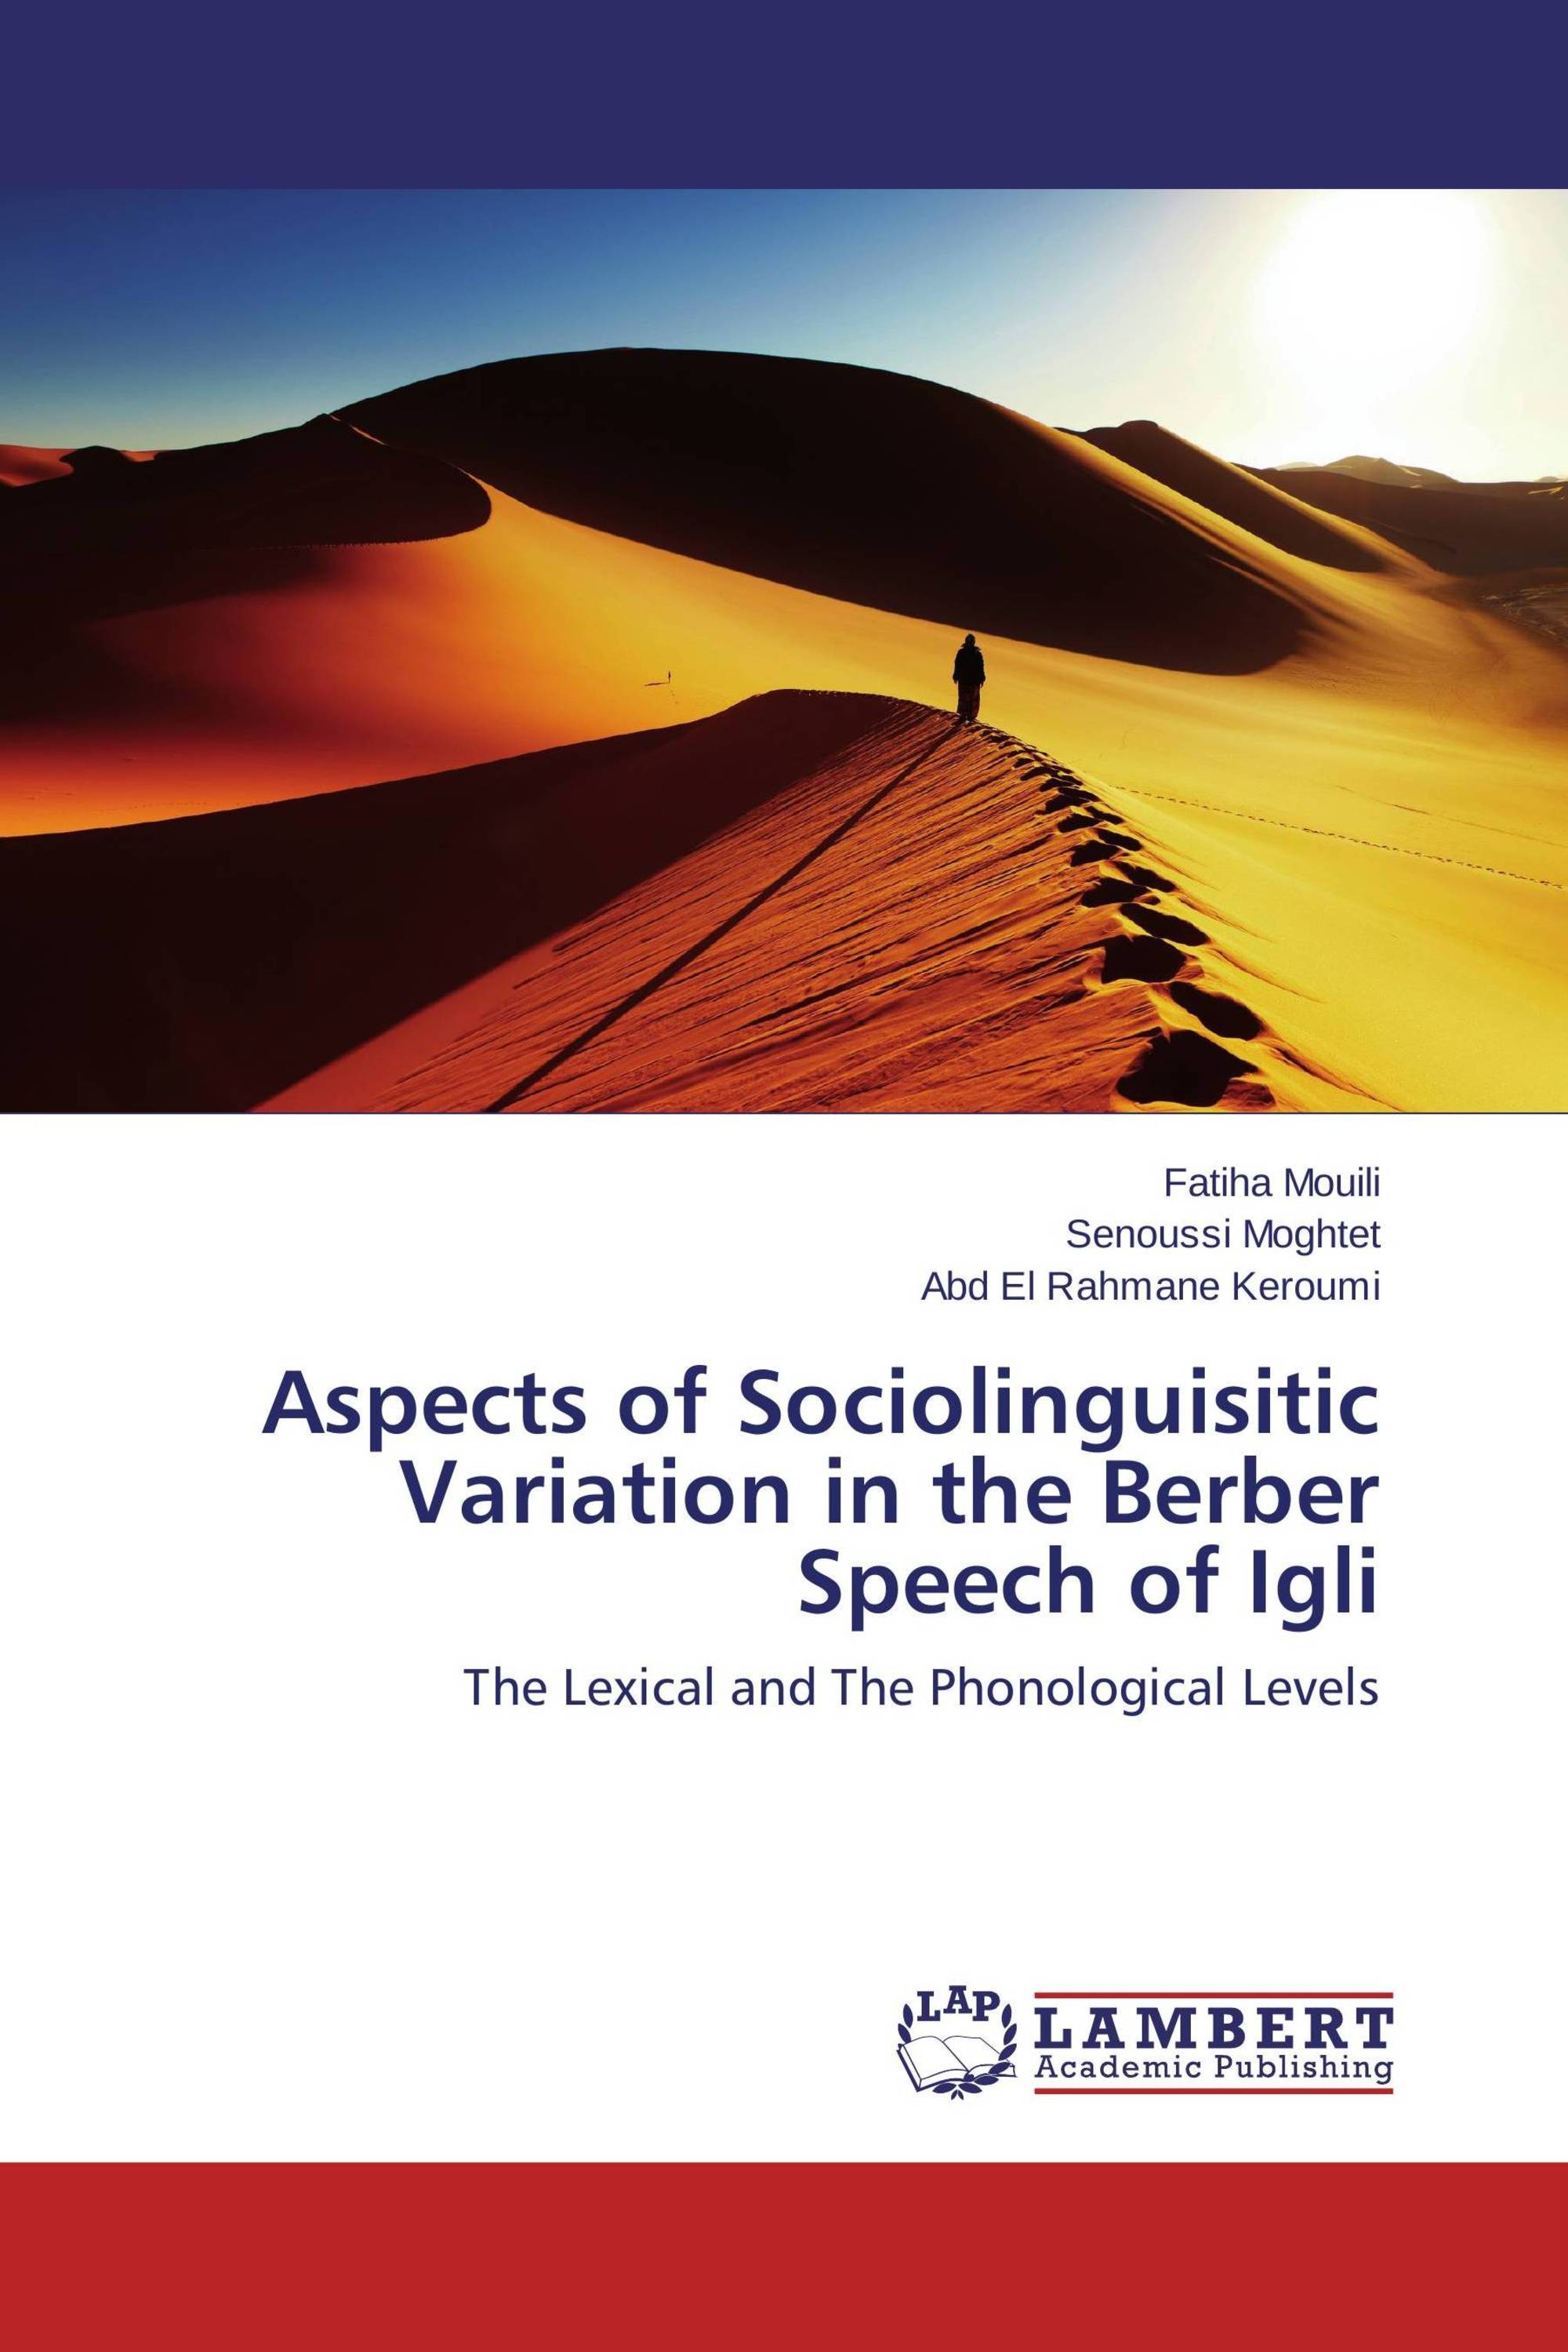 Aspects of Sociolinguisitic Variation in the Berber Speech of Igli